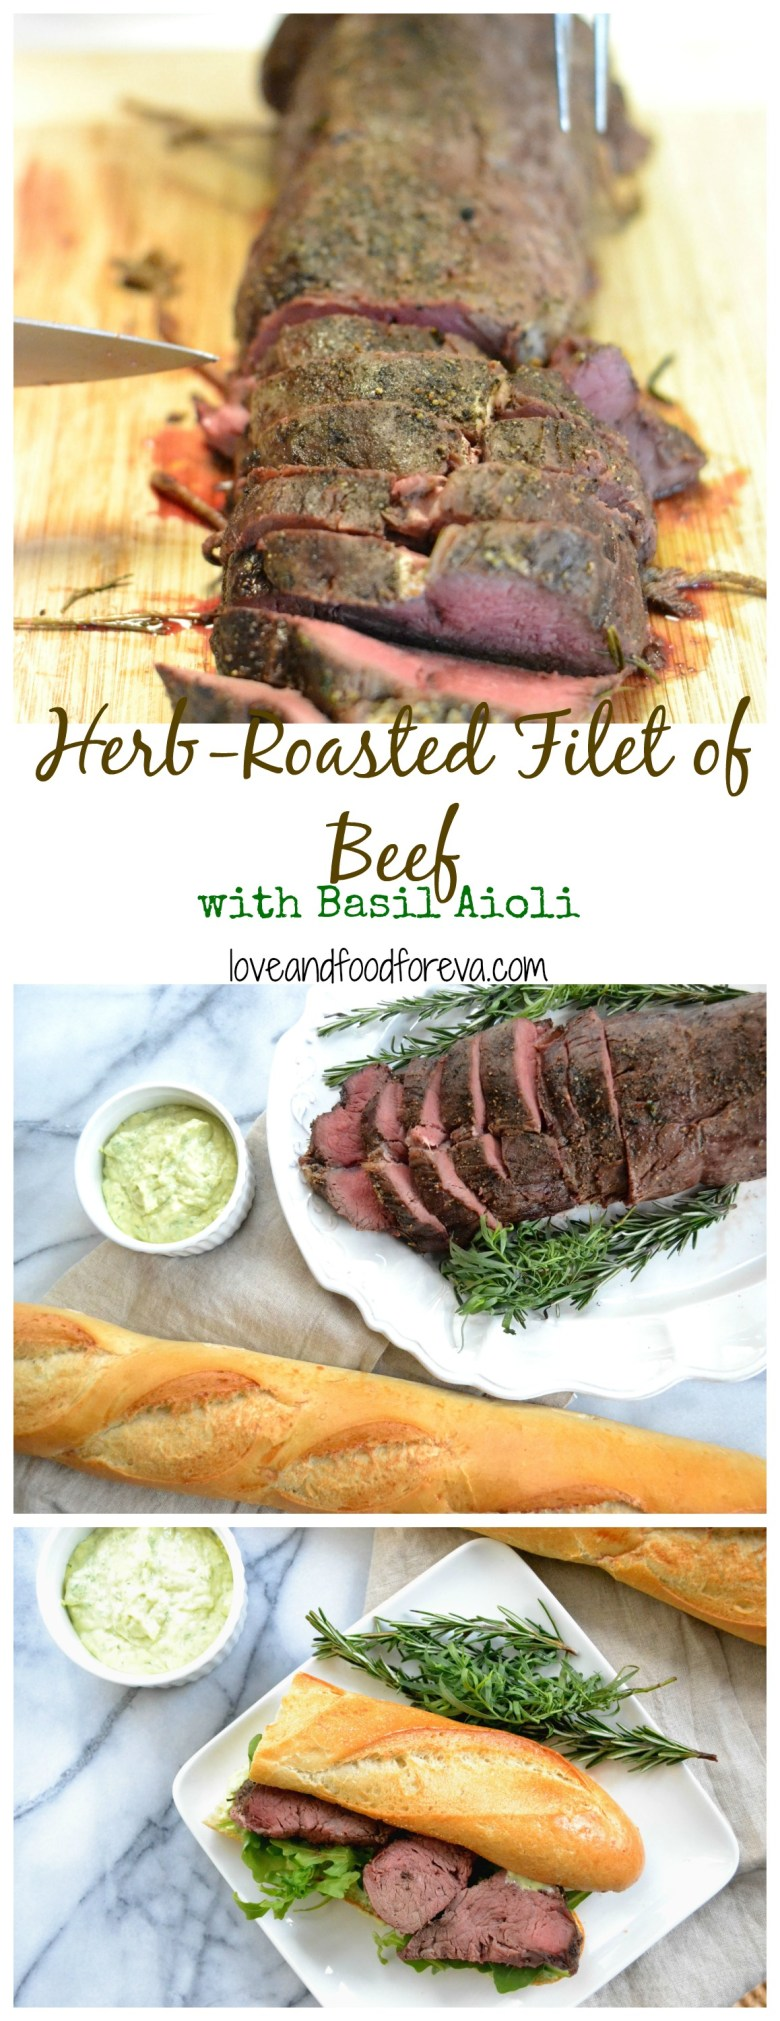 Herb Roasted Filet of Beef with Basil Aioli - an easy yet impressive dish for dinner parties!